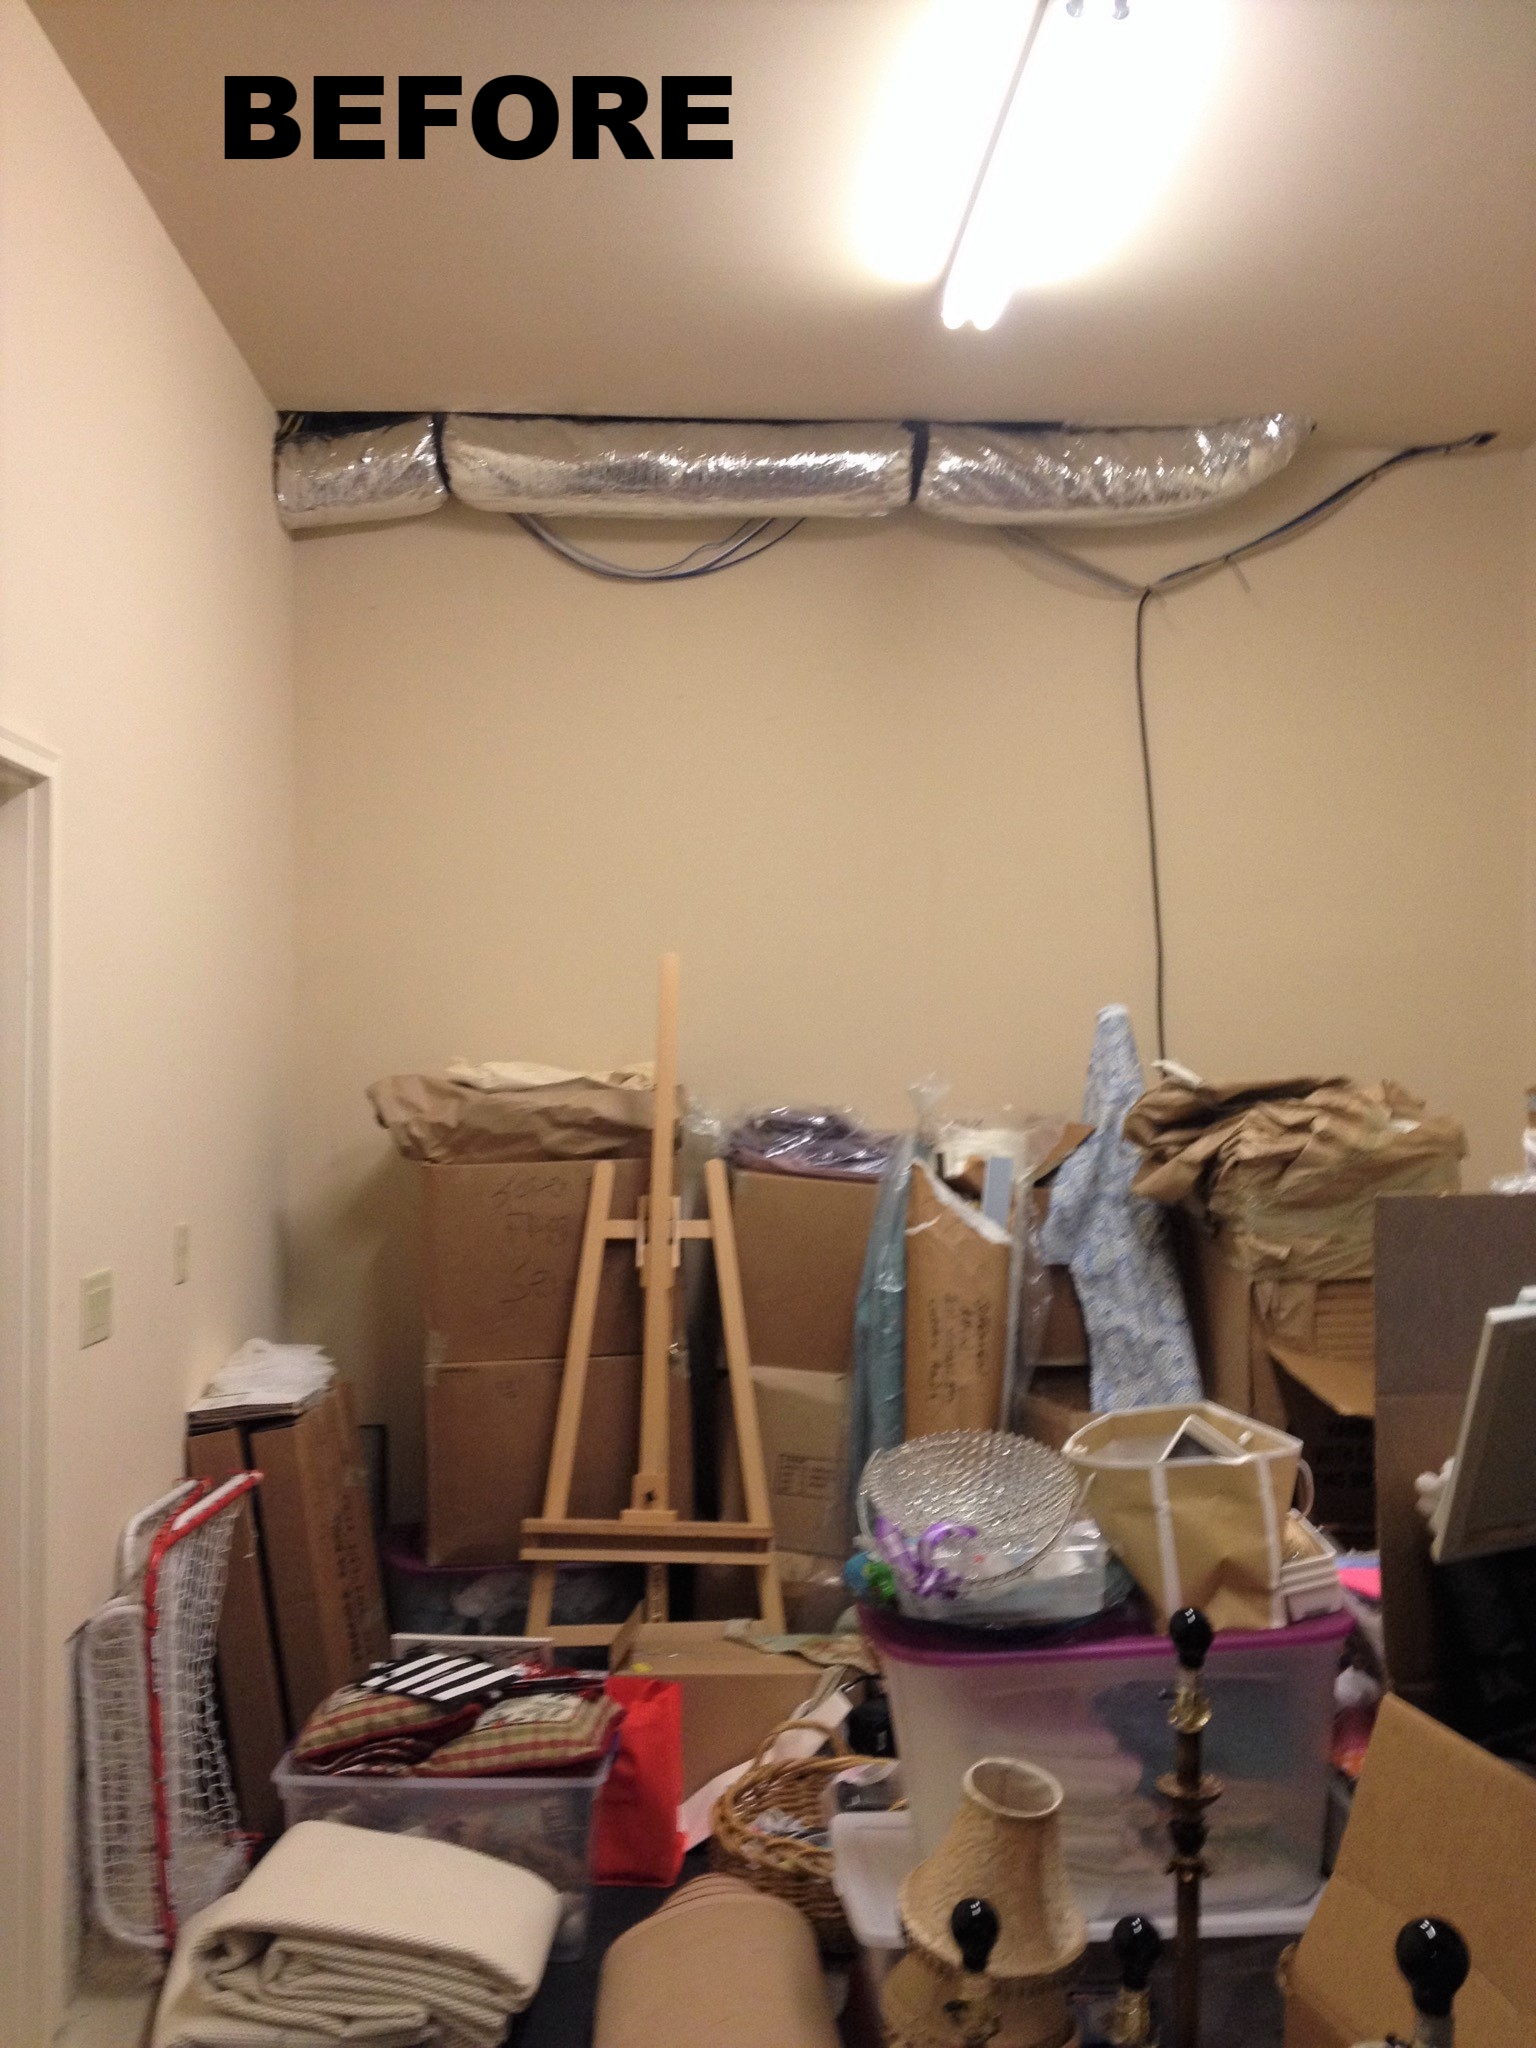 Craft-Sewing Rm Before 1.JPG